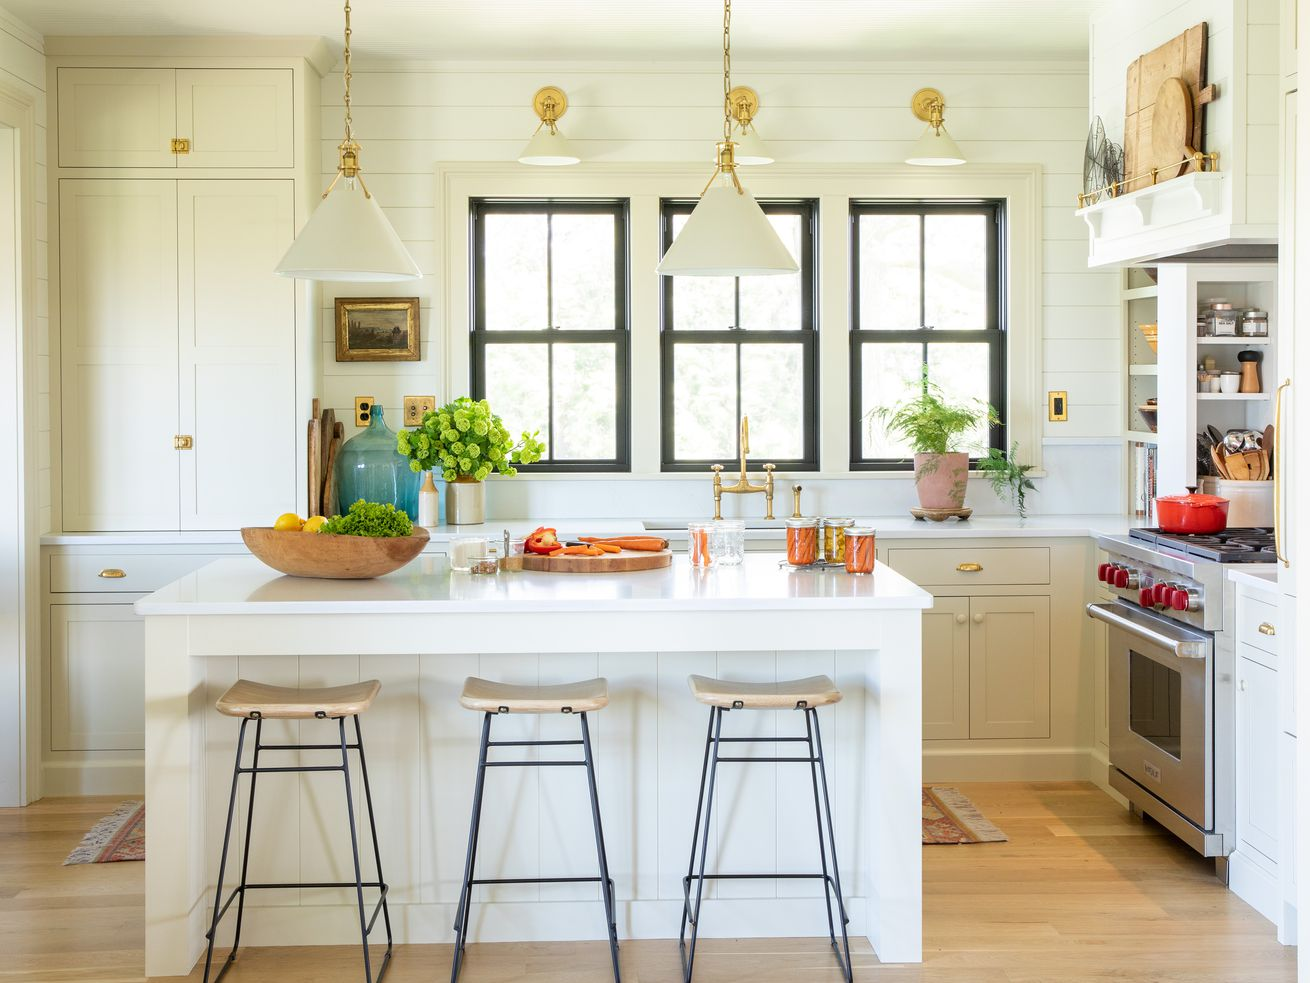 Fall 2021 Before & After Kitchen, kitchen island view